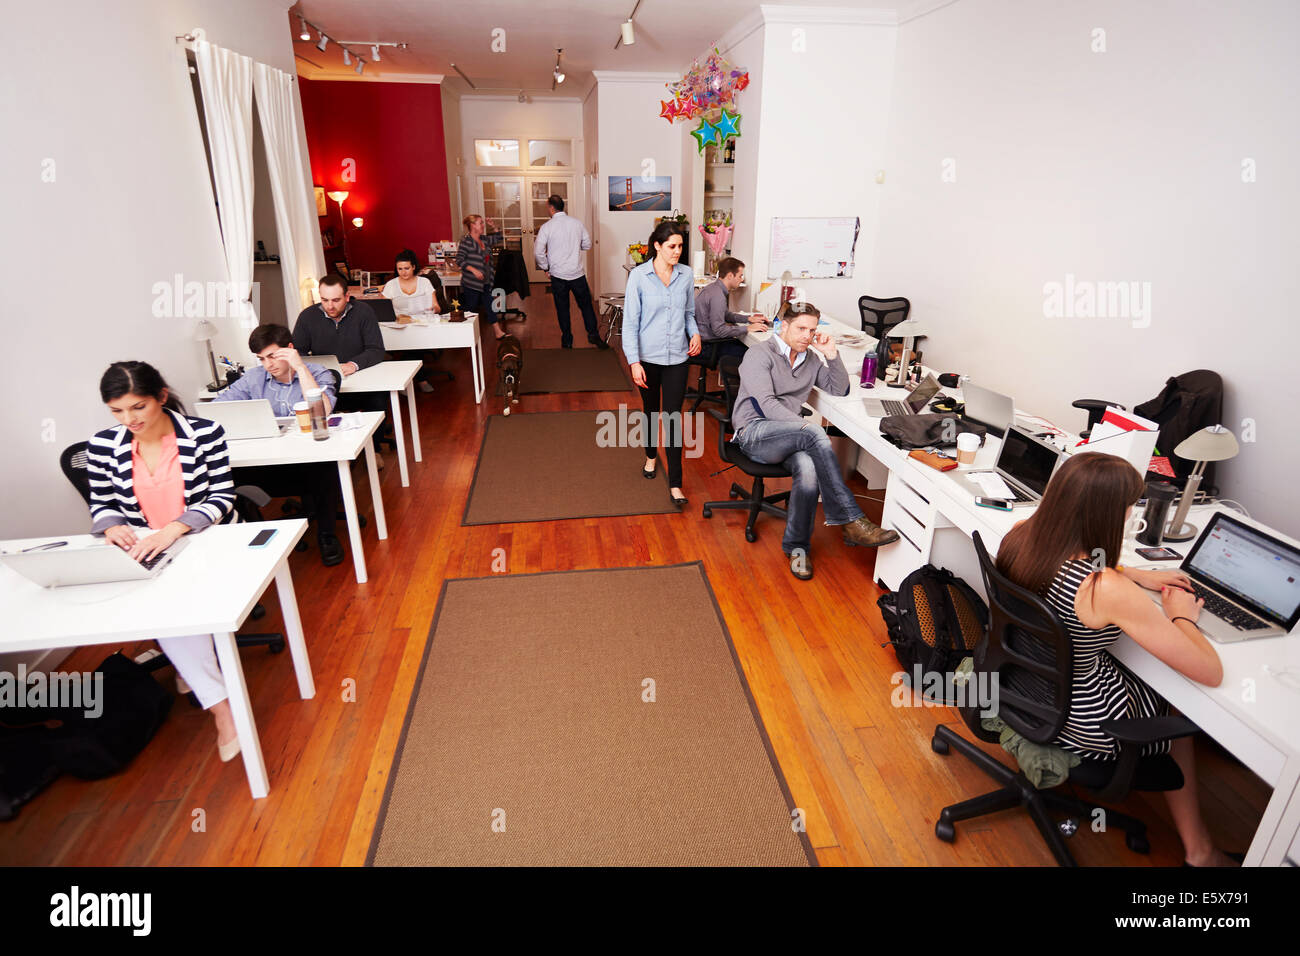 People at work in busy modern office - Stock Image